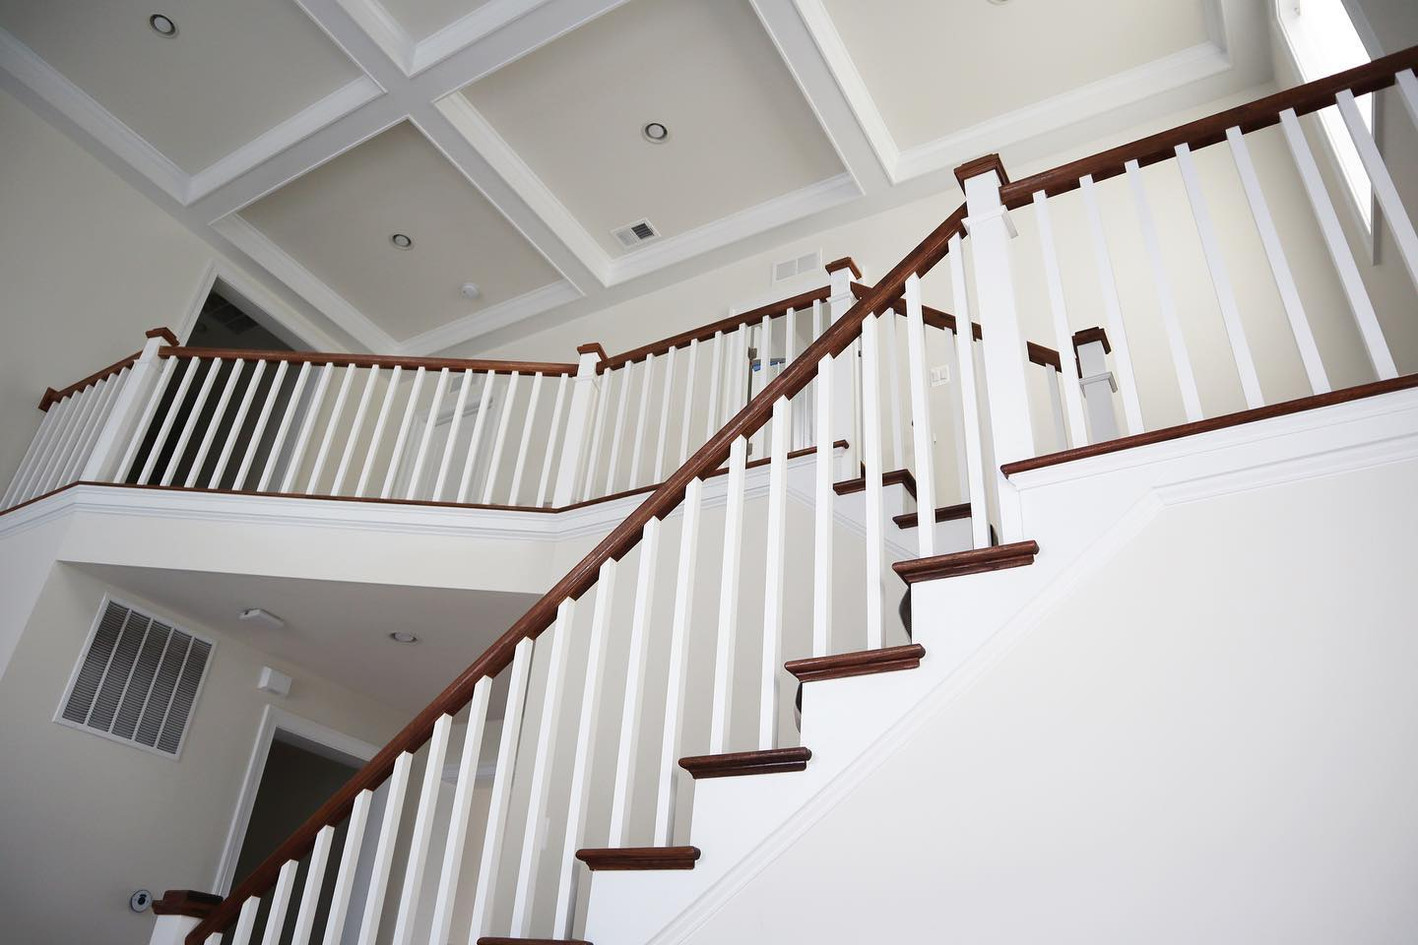 Stairs and rails